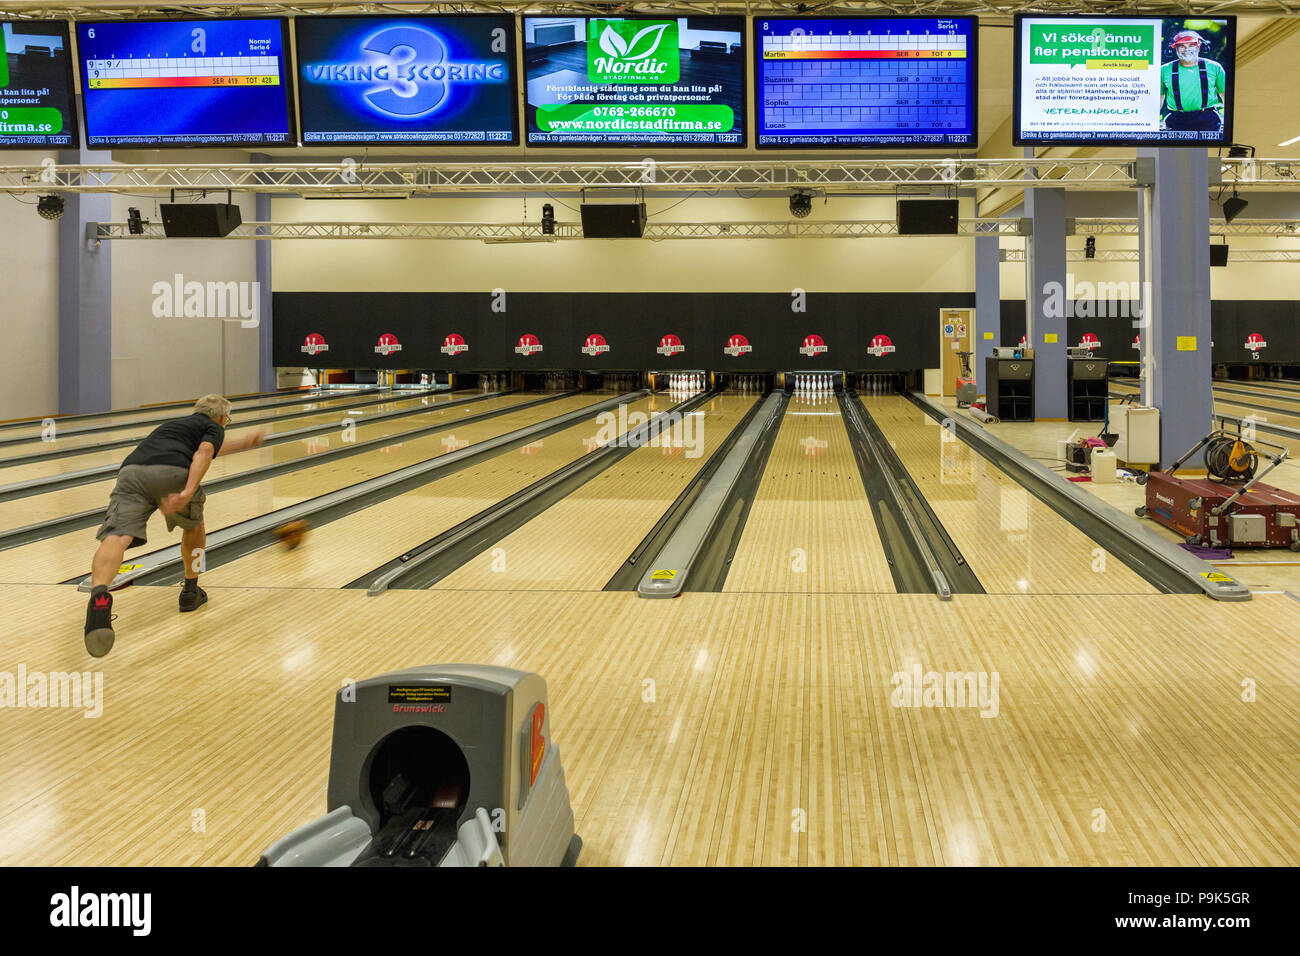 gothenburg-sweden-july-18-2018-lone-older-man-practising-bowling-by-himself-P9K5GR.jpg